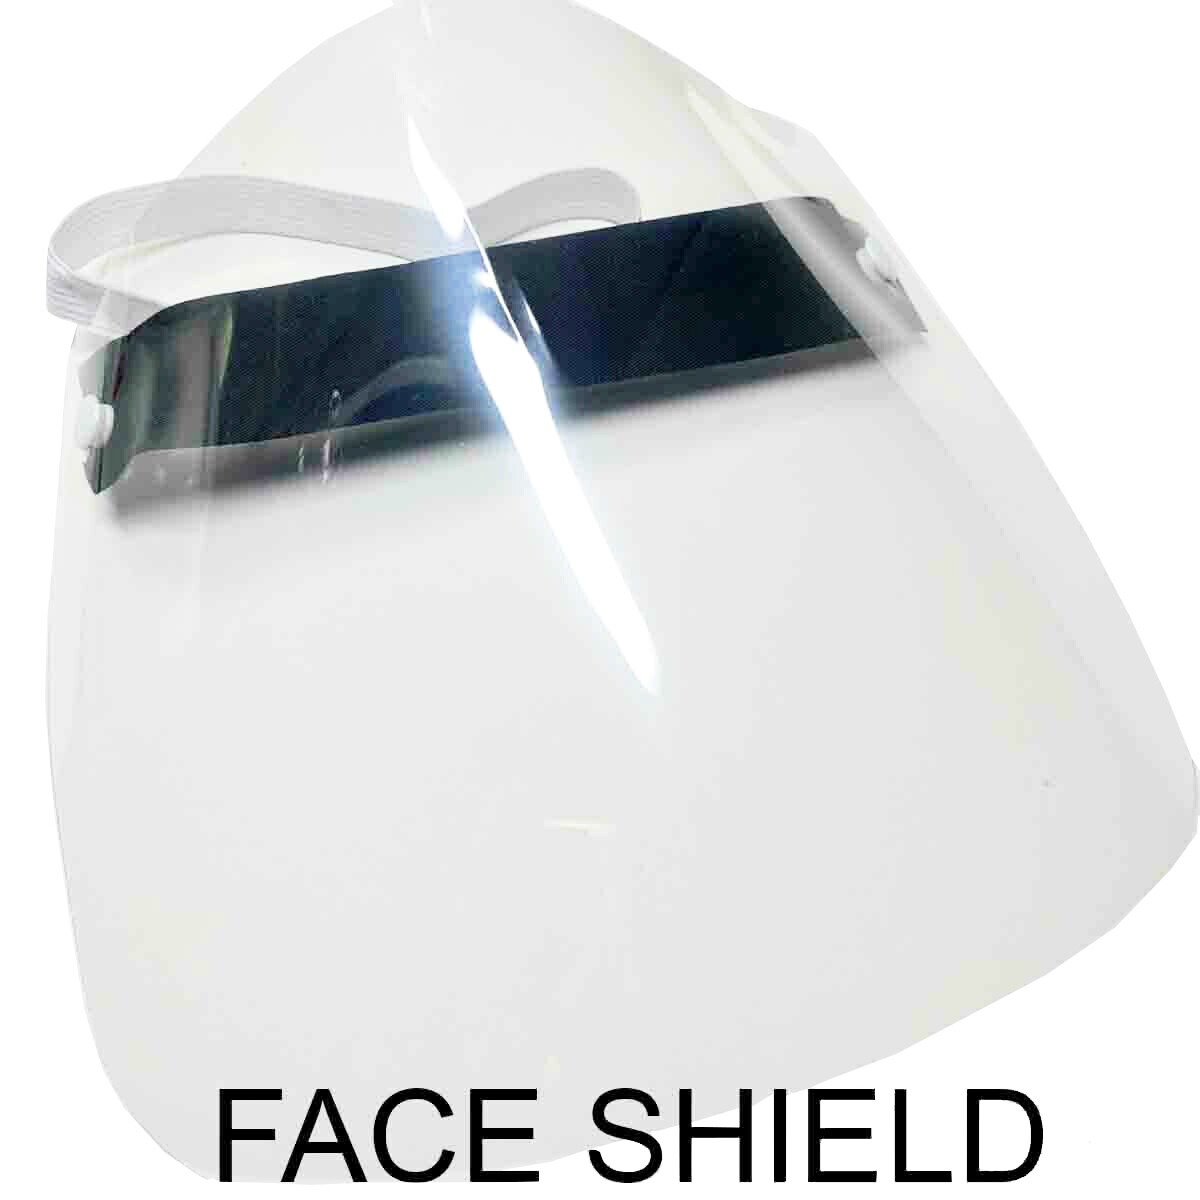 REUSABLE FACE SHIELD (REMOVE THE FILM OFF BOTH SIDES OF THE SHIELD)